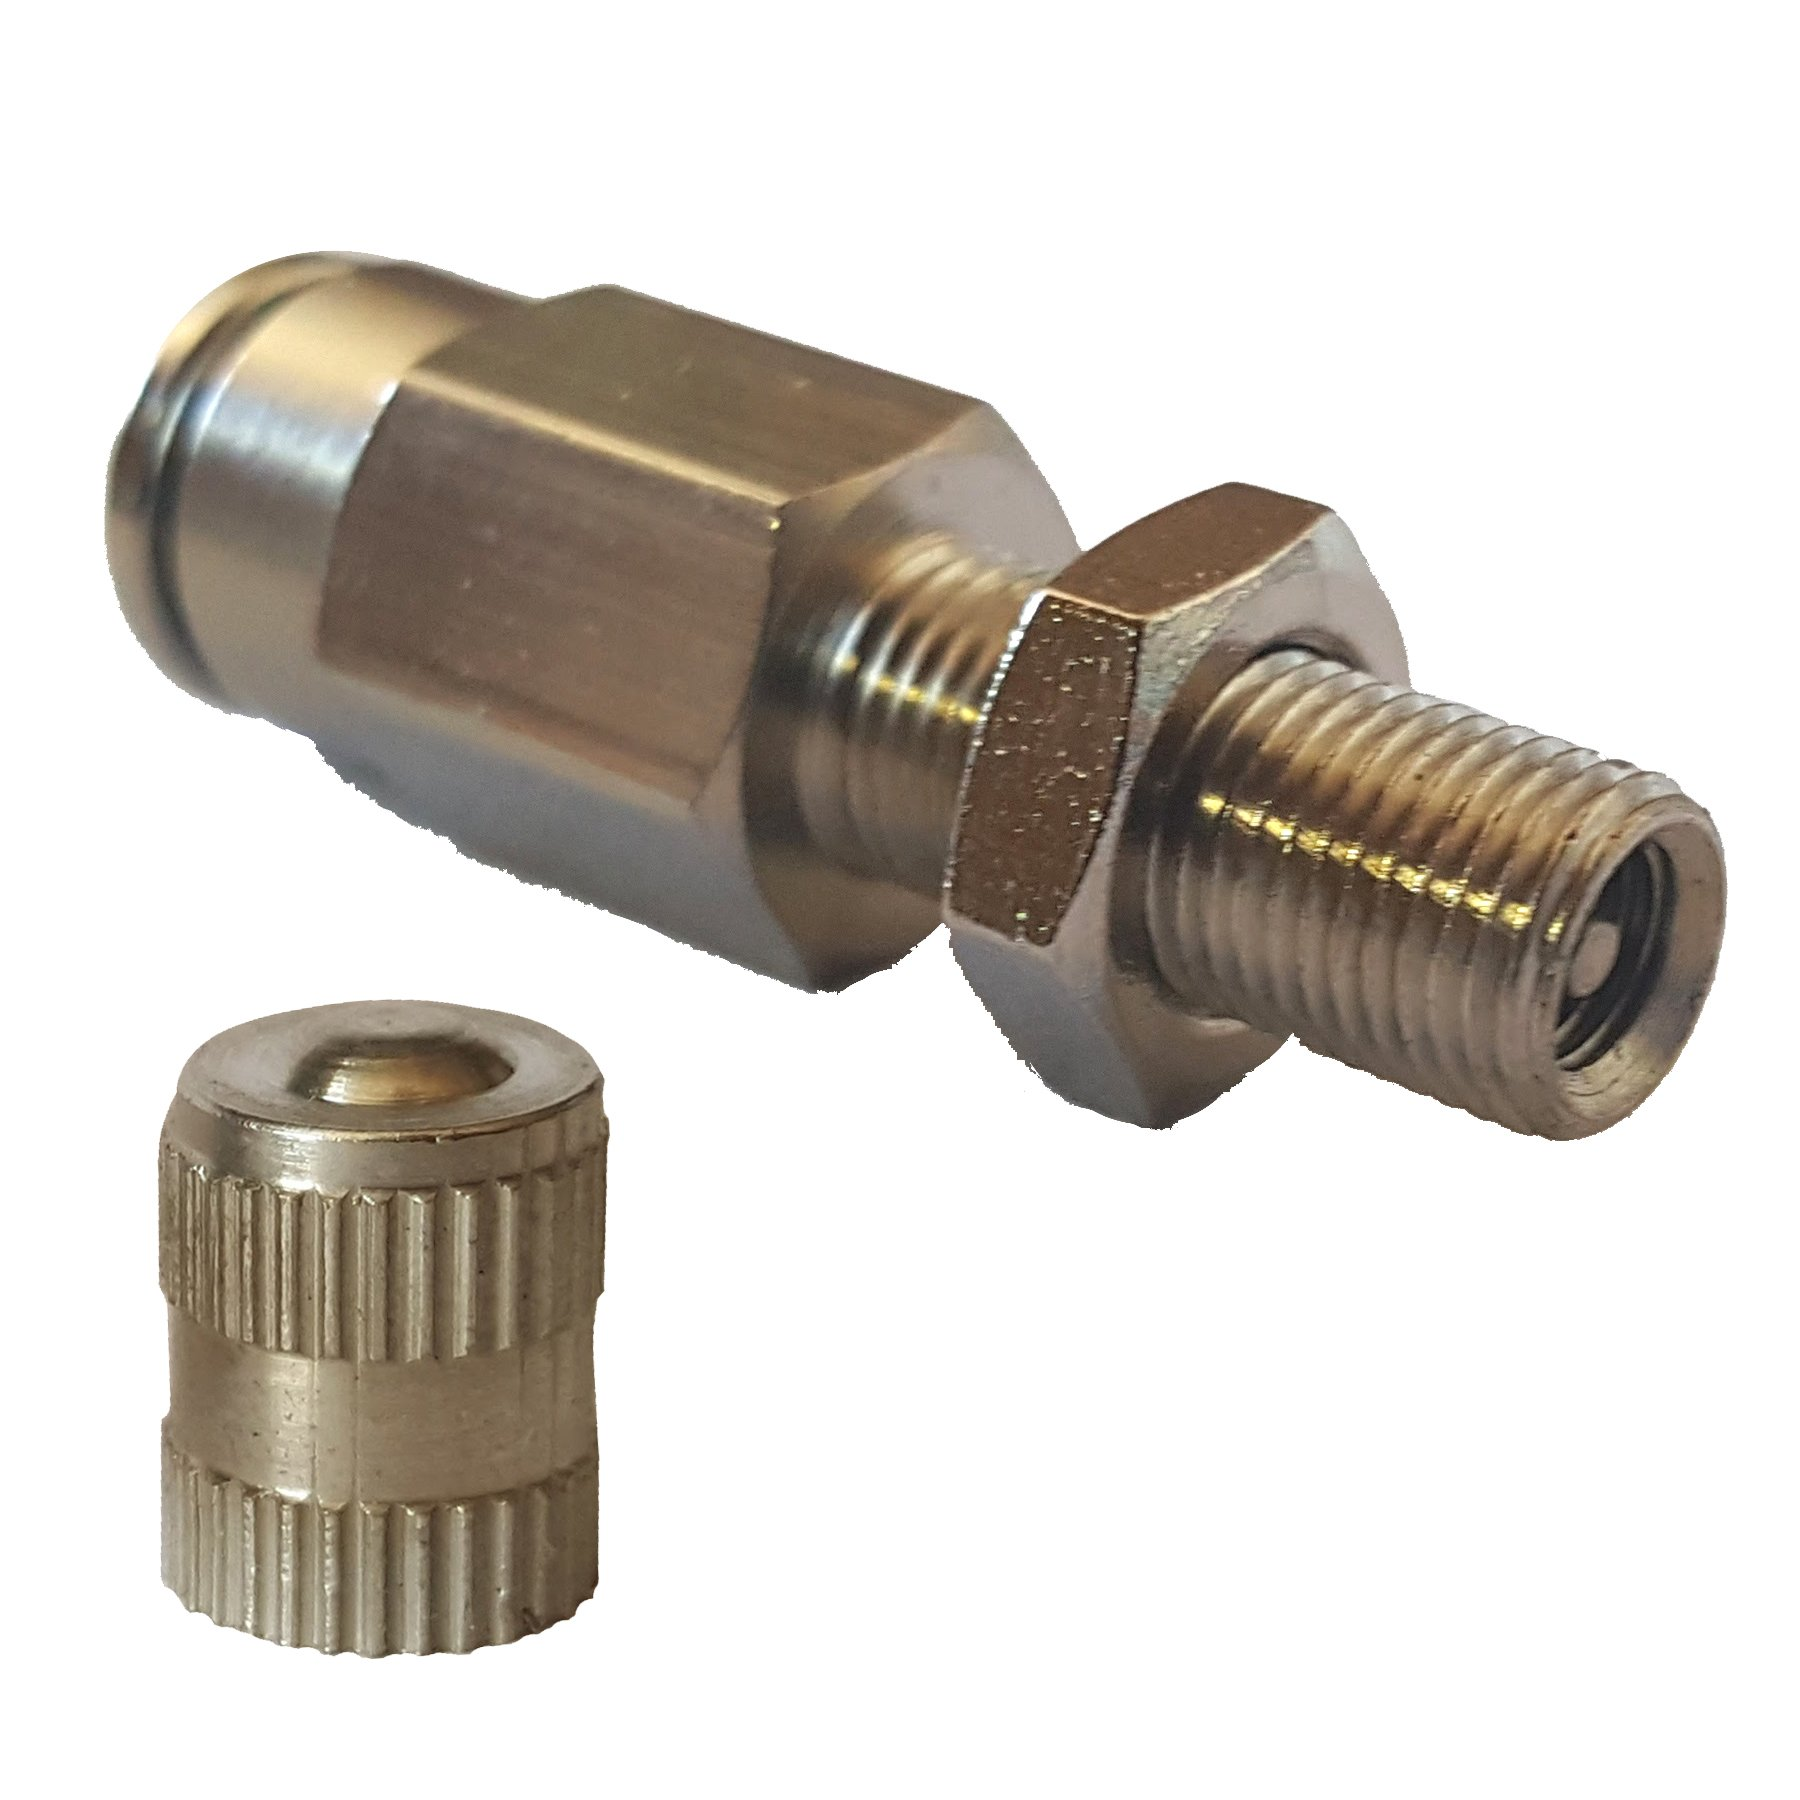 airmaxxx 1/4'' Schrader Inflation Valve Fill Air Ride Suspension Push to Connect